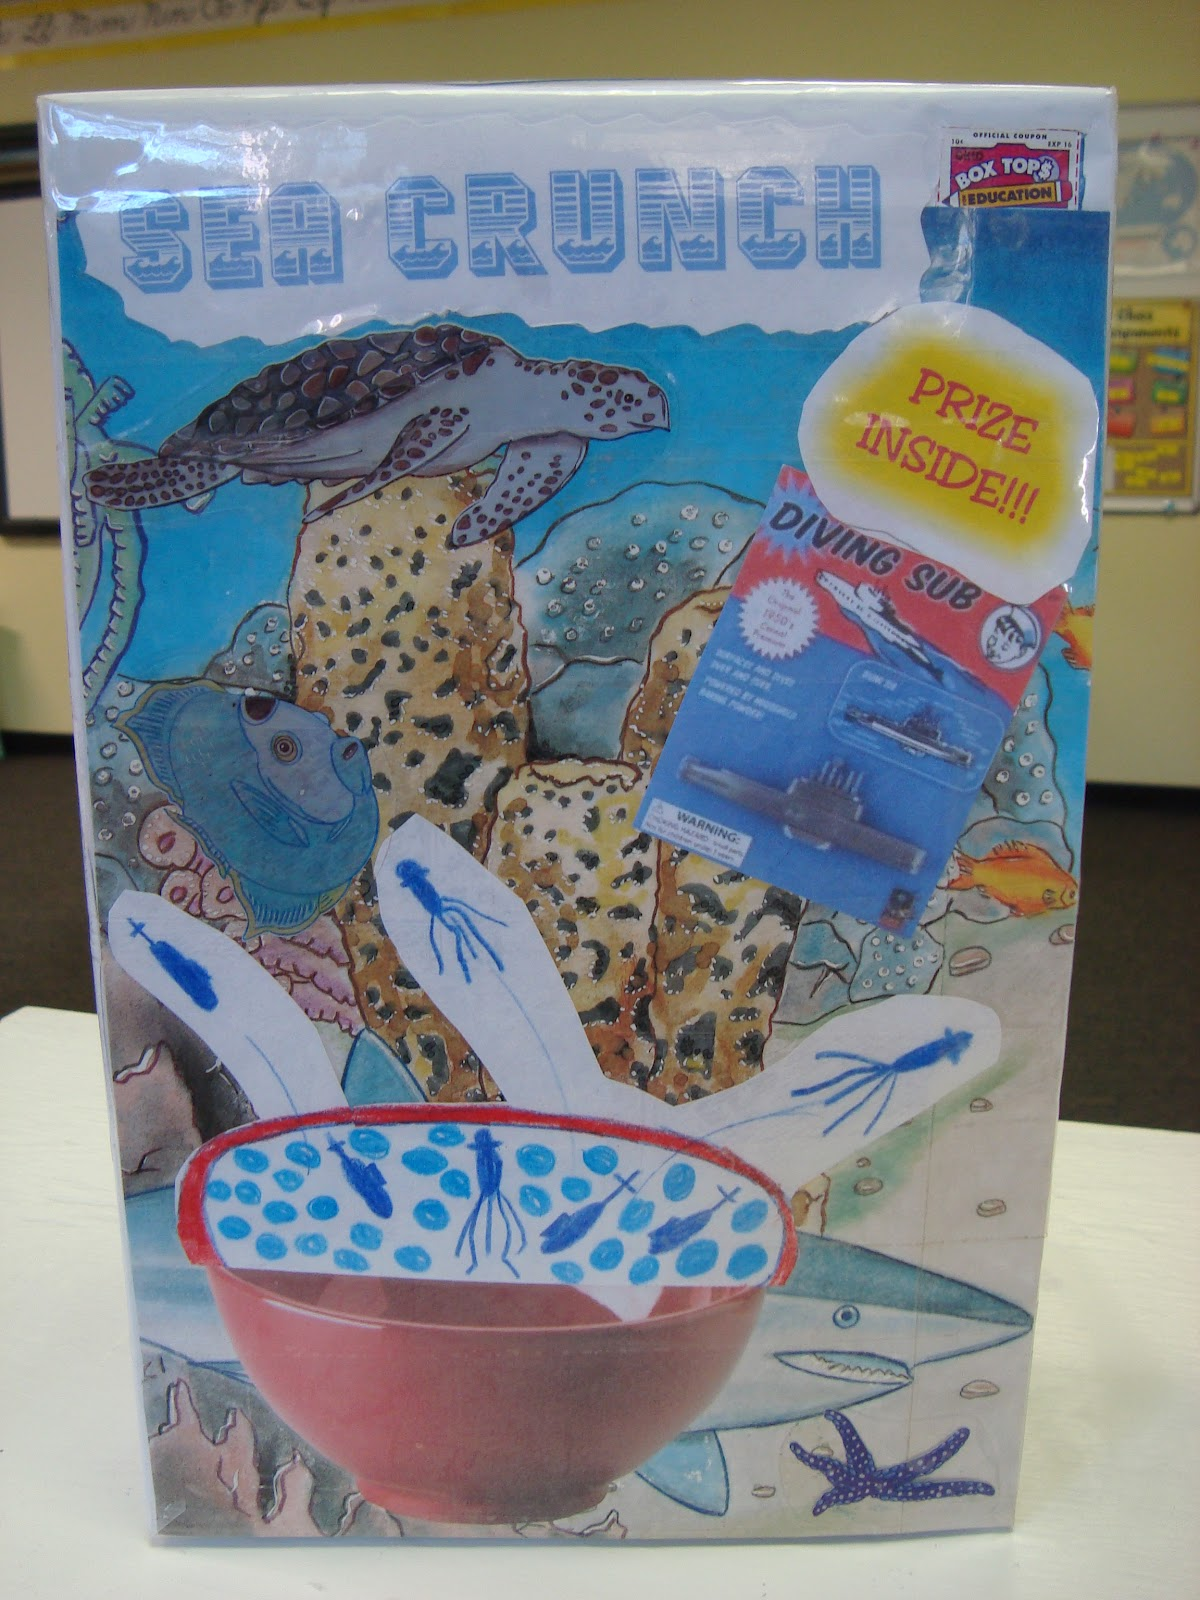 Cereal Box Book Report: A Creative Writing Project & Activity for Gifted Students